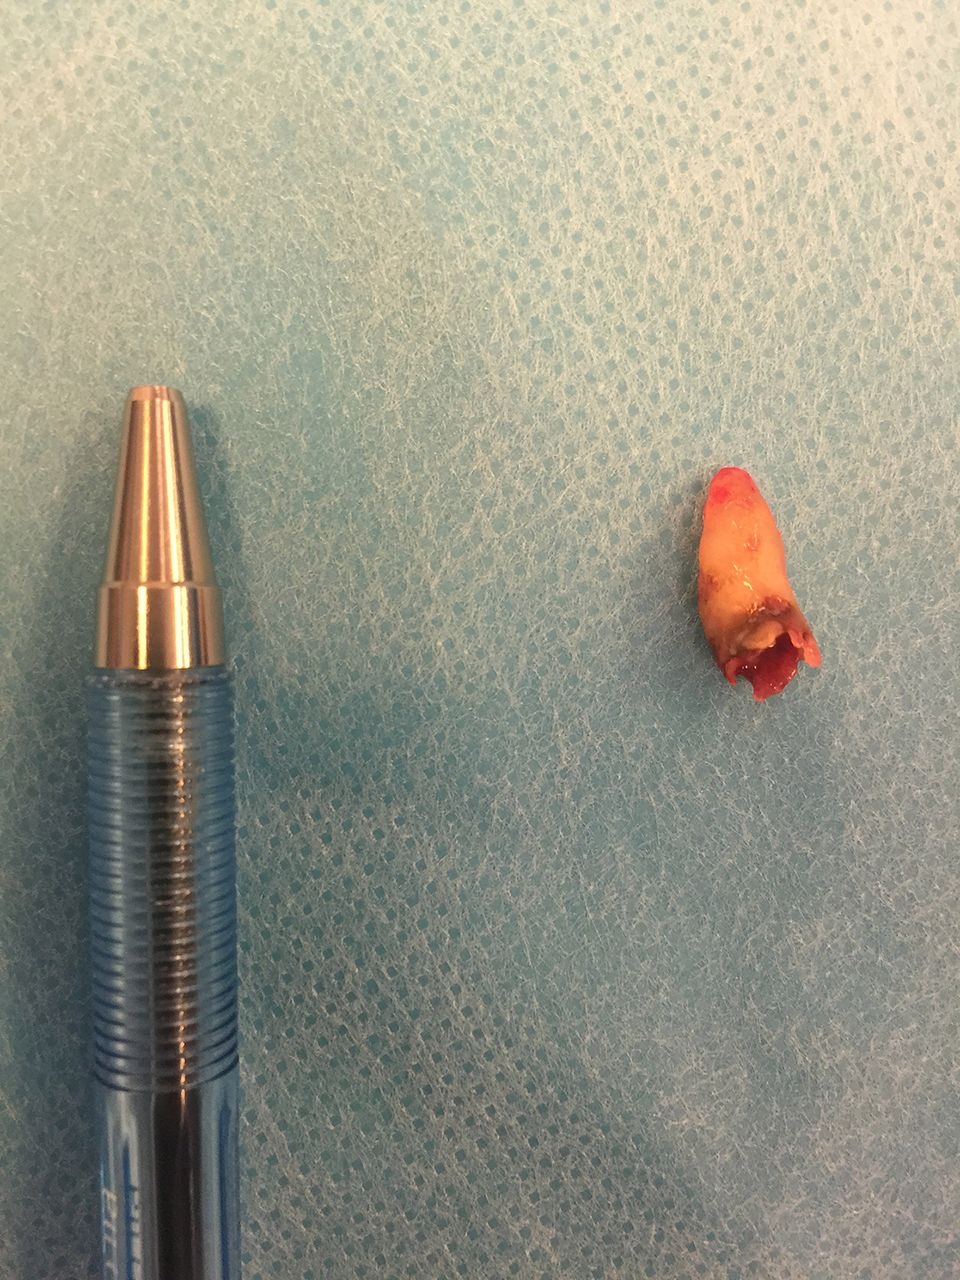 Dent removed from the nostril of the man